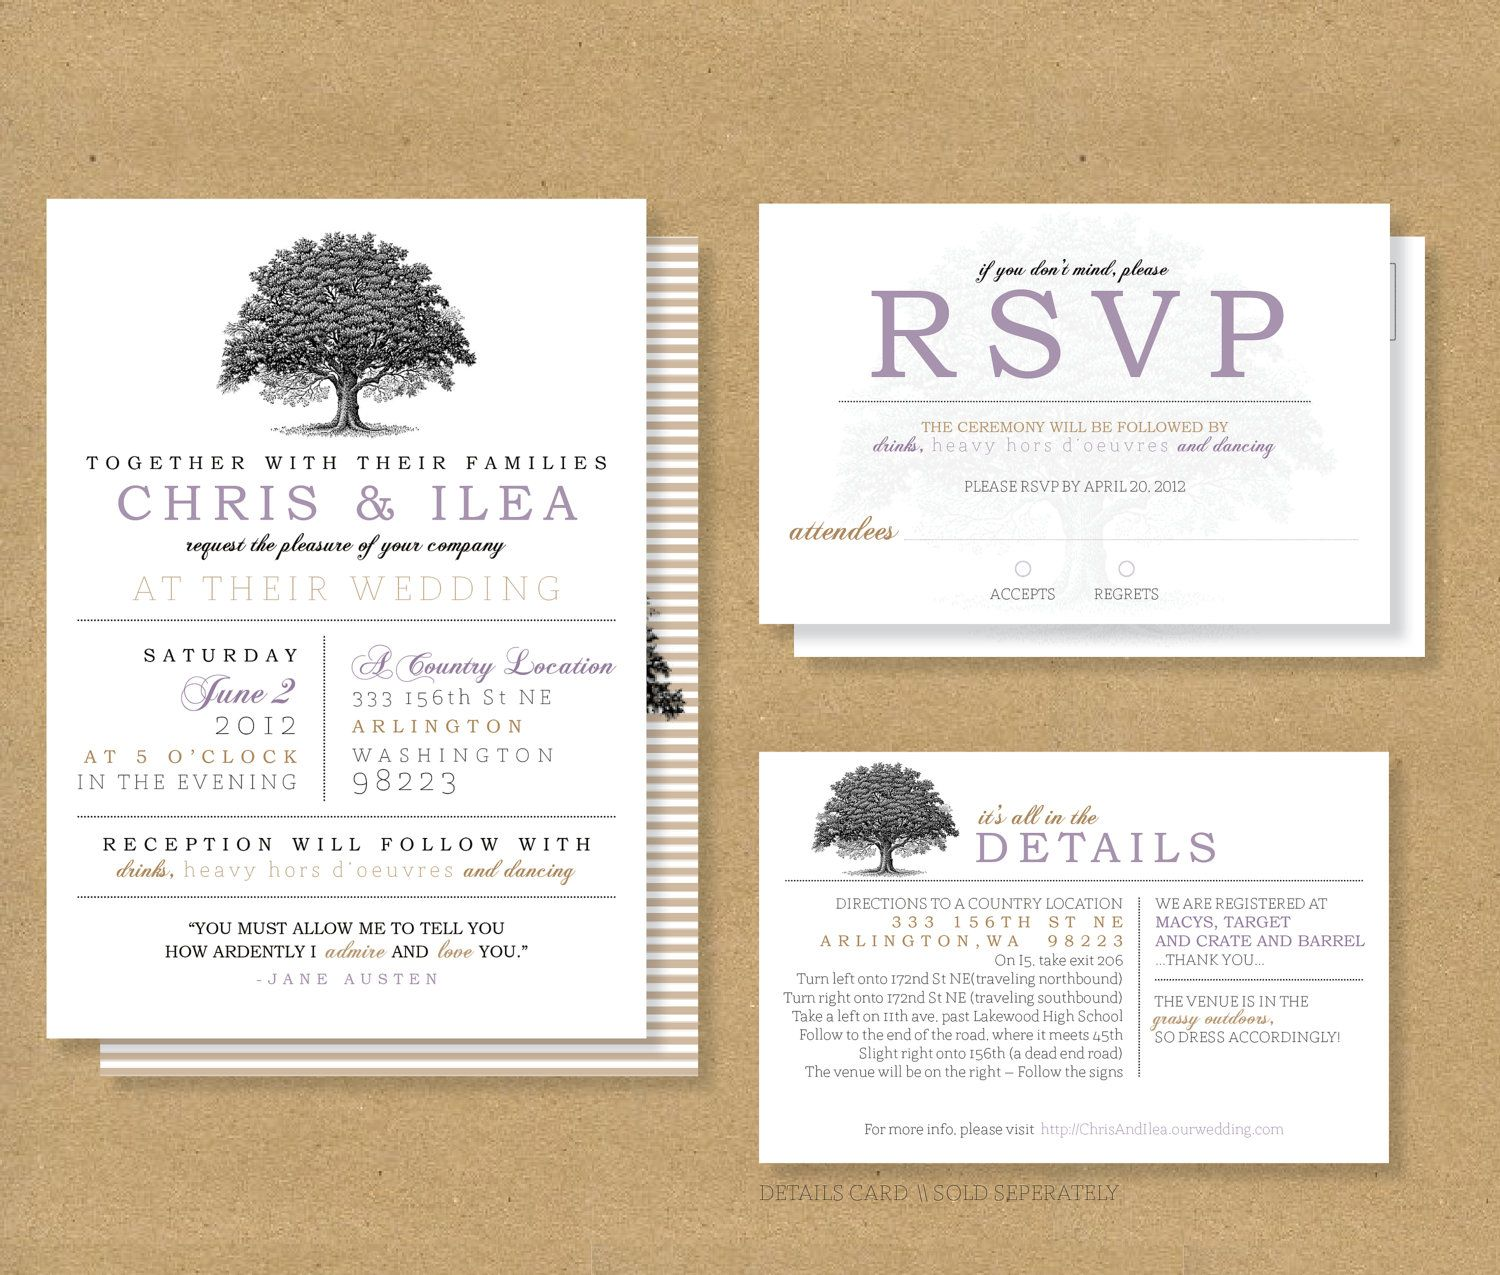 wedding invitationwedding rsvp wording samples tips With wedding invitations rsvp and information